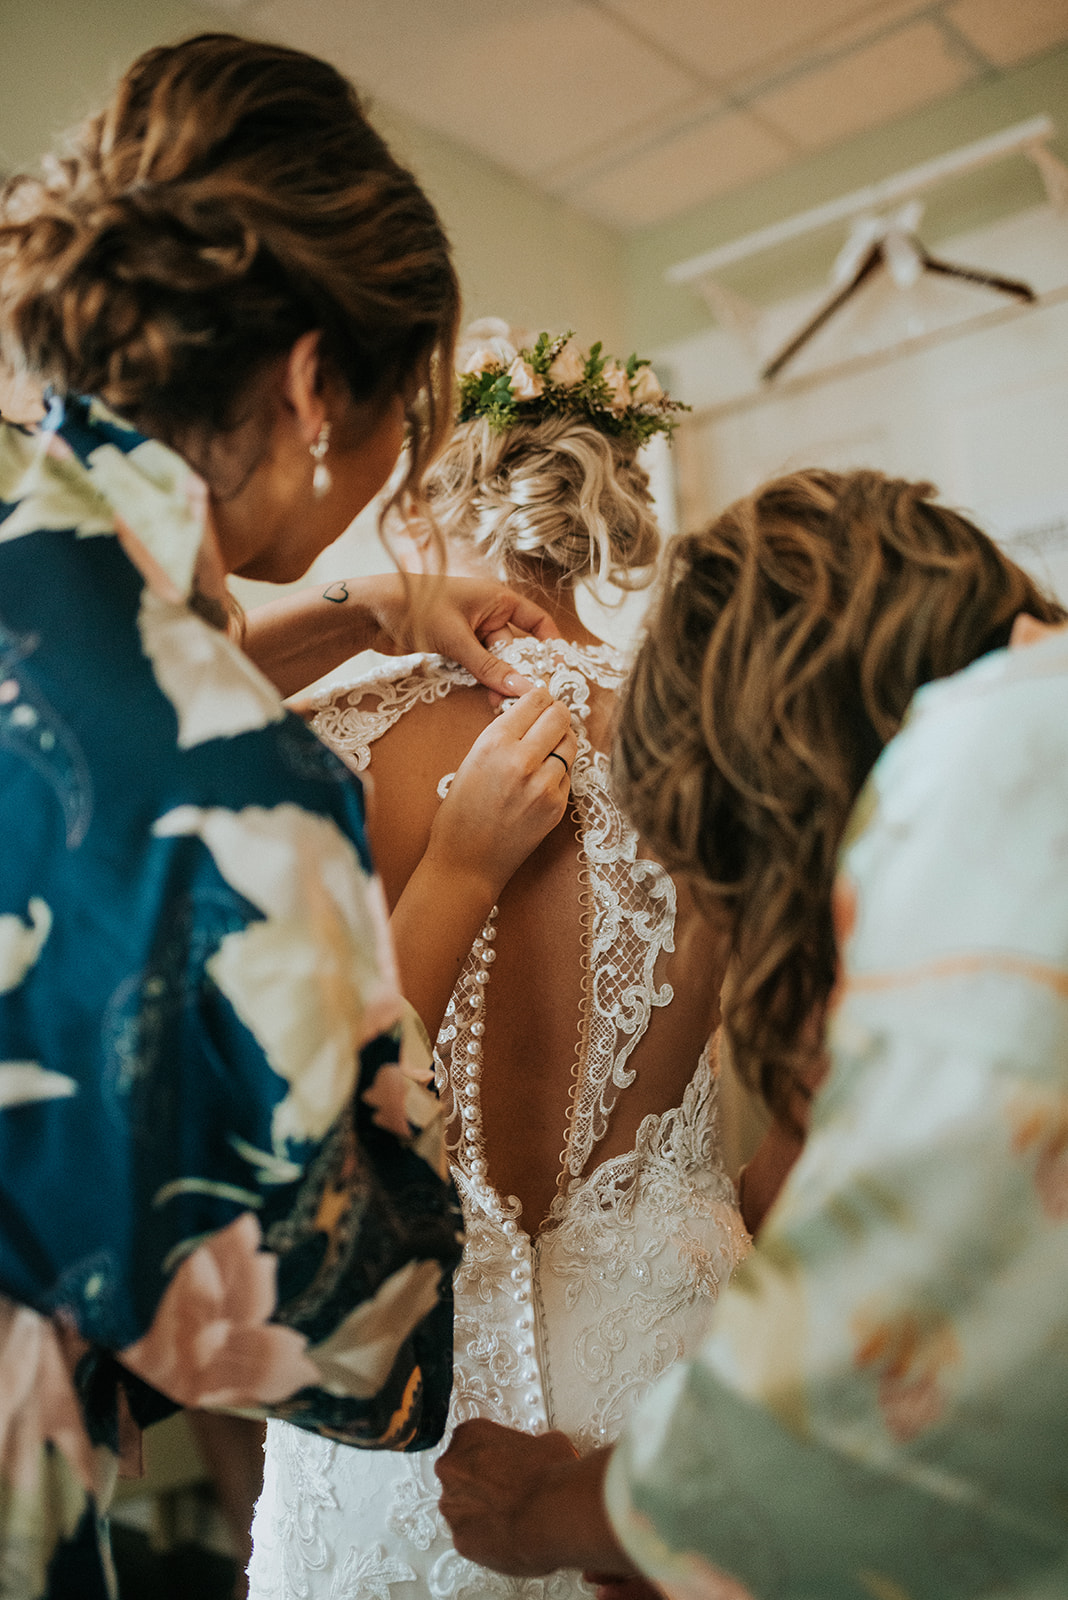 overthevineswisconsinwedding_0288.jpg